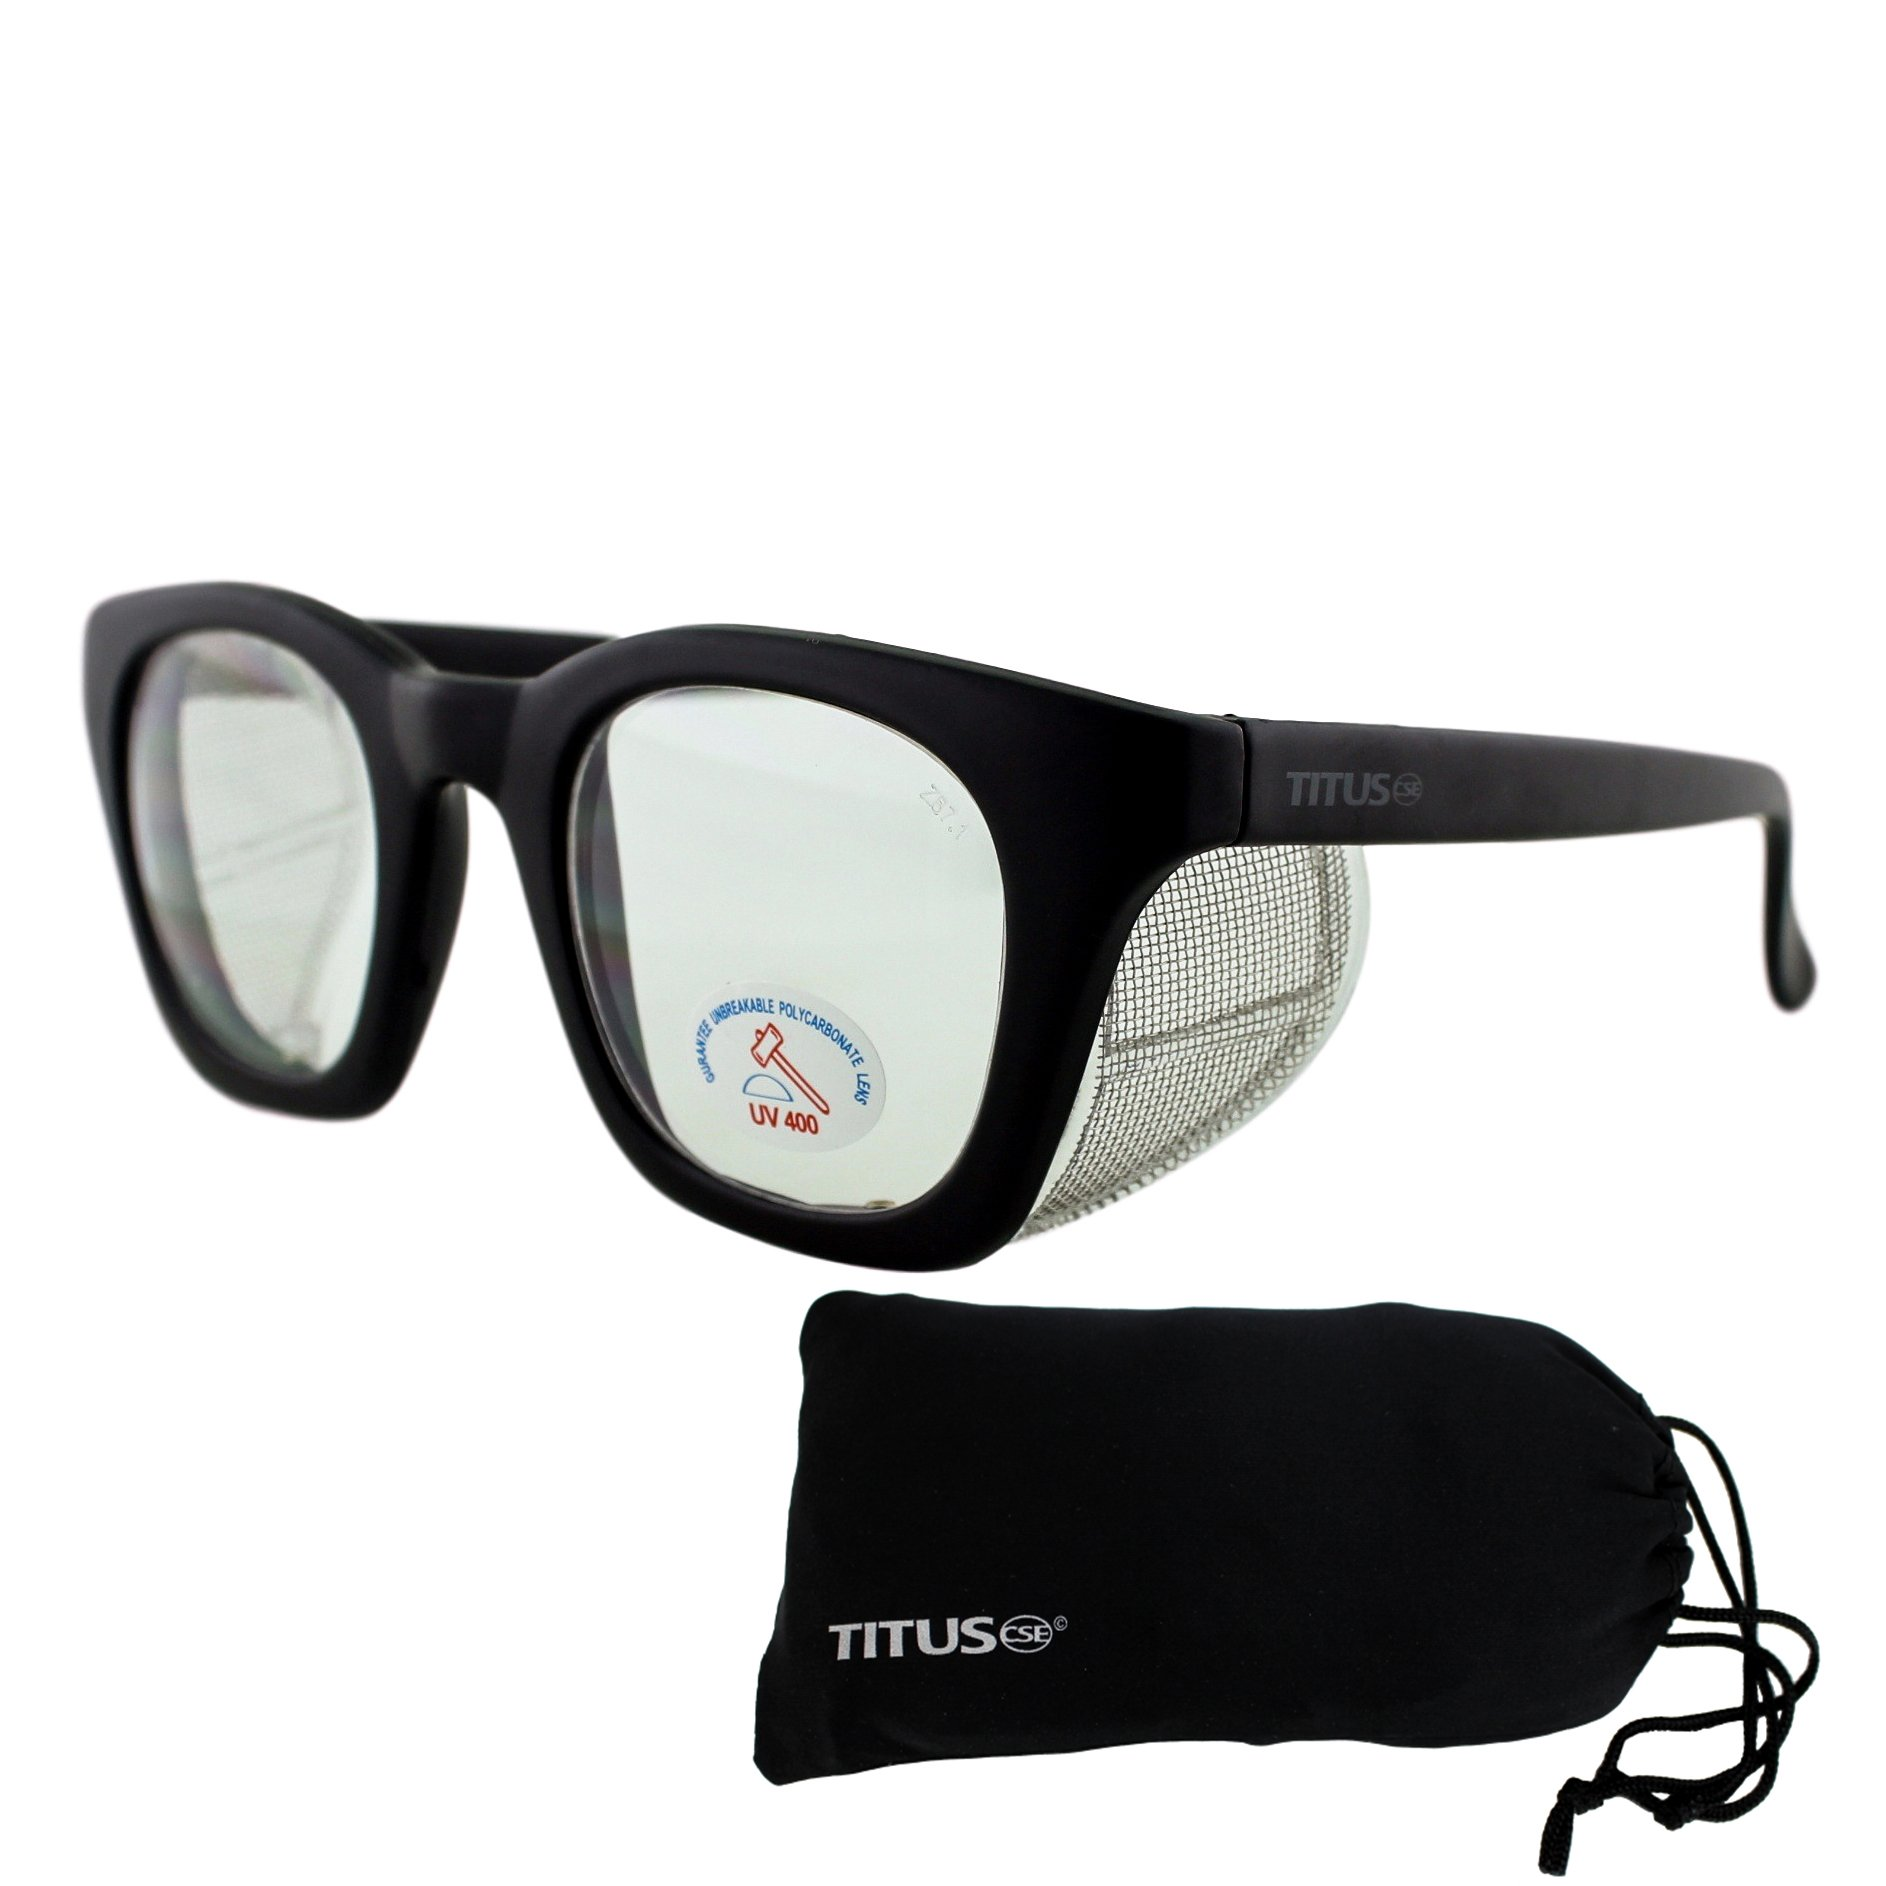 Retro Style Safety Glasses with Side Shield (With Pouch, Clear Lens - Matte Frame)